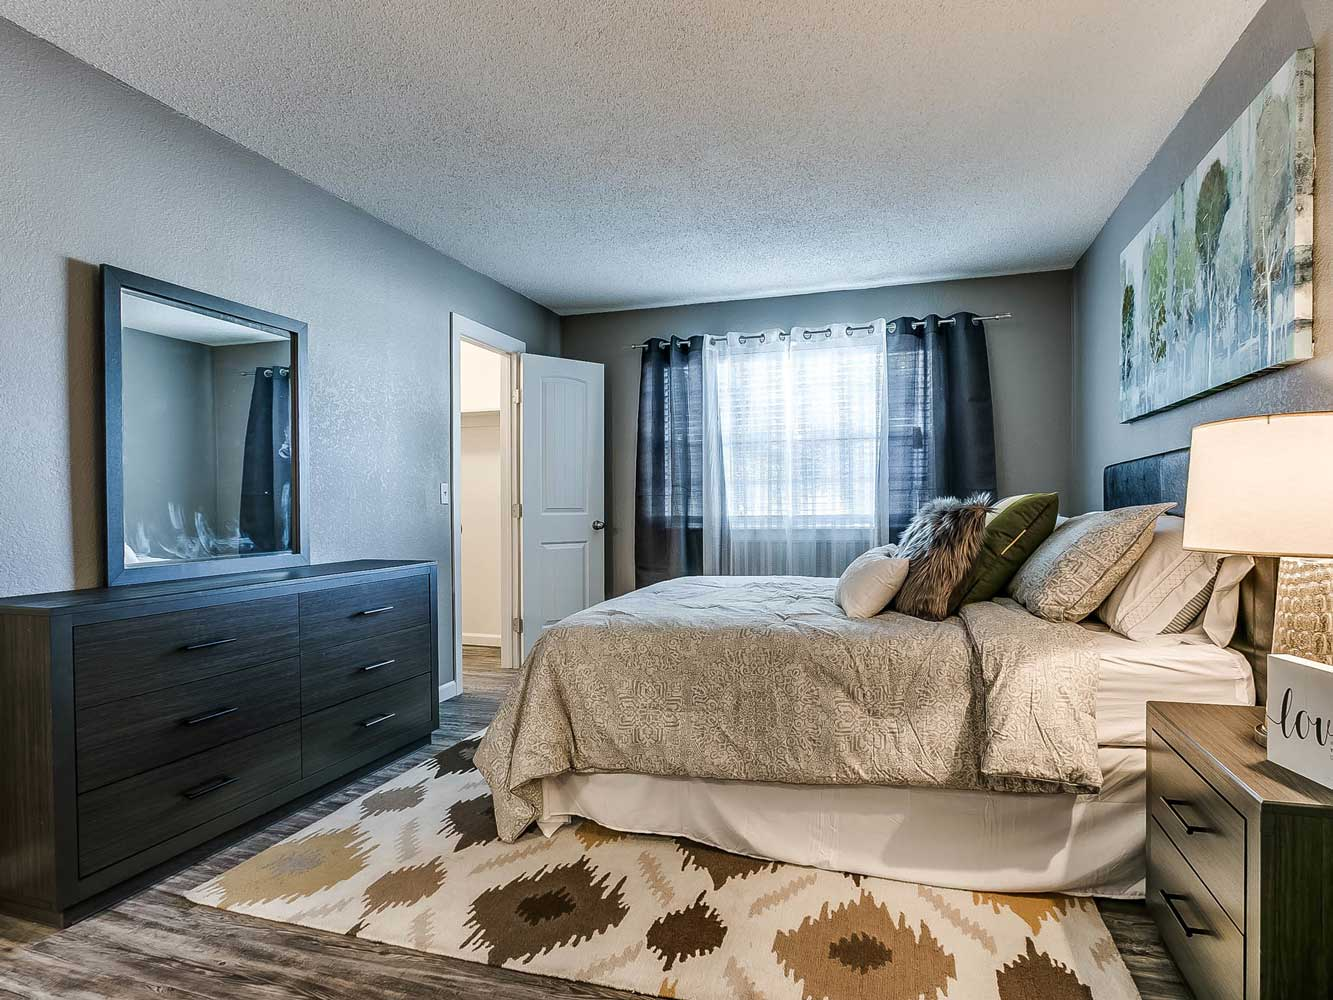 Bedroom at The Heights on Forty4 at Oklahoma City, OK